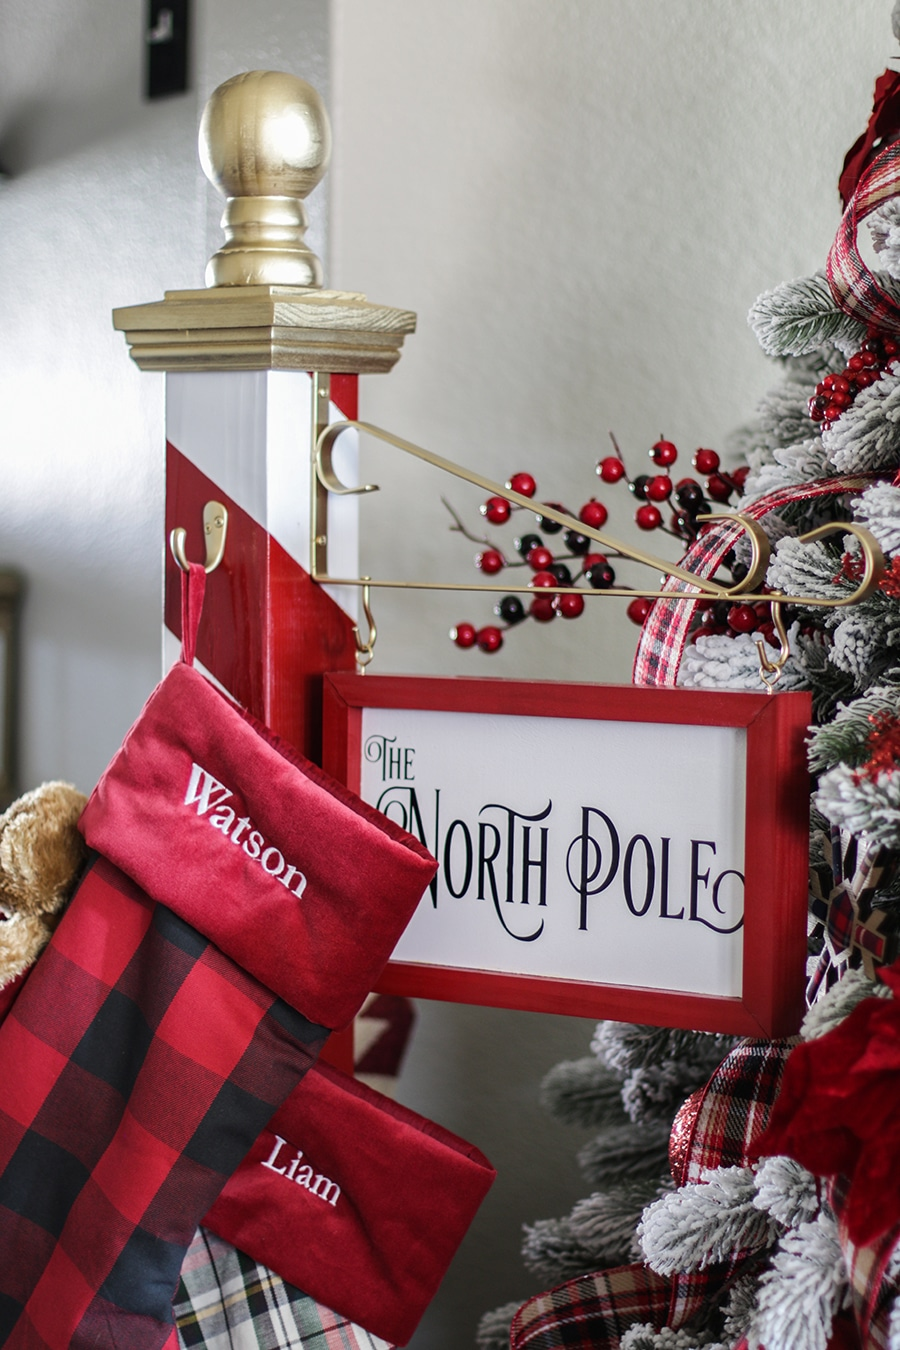 North Pole Christmas Stocking Holder